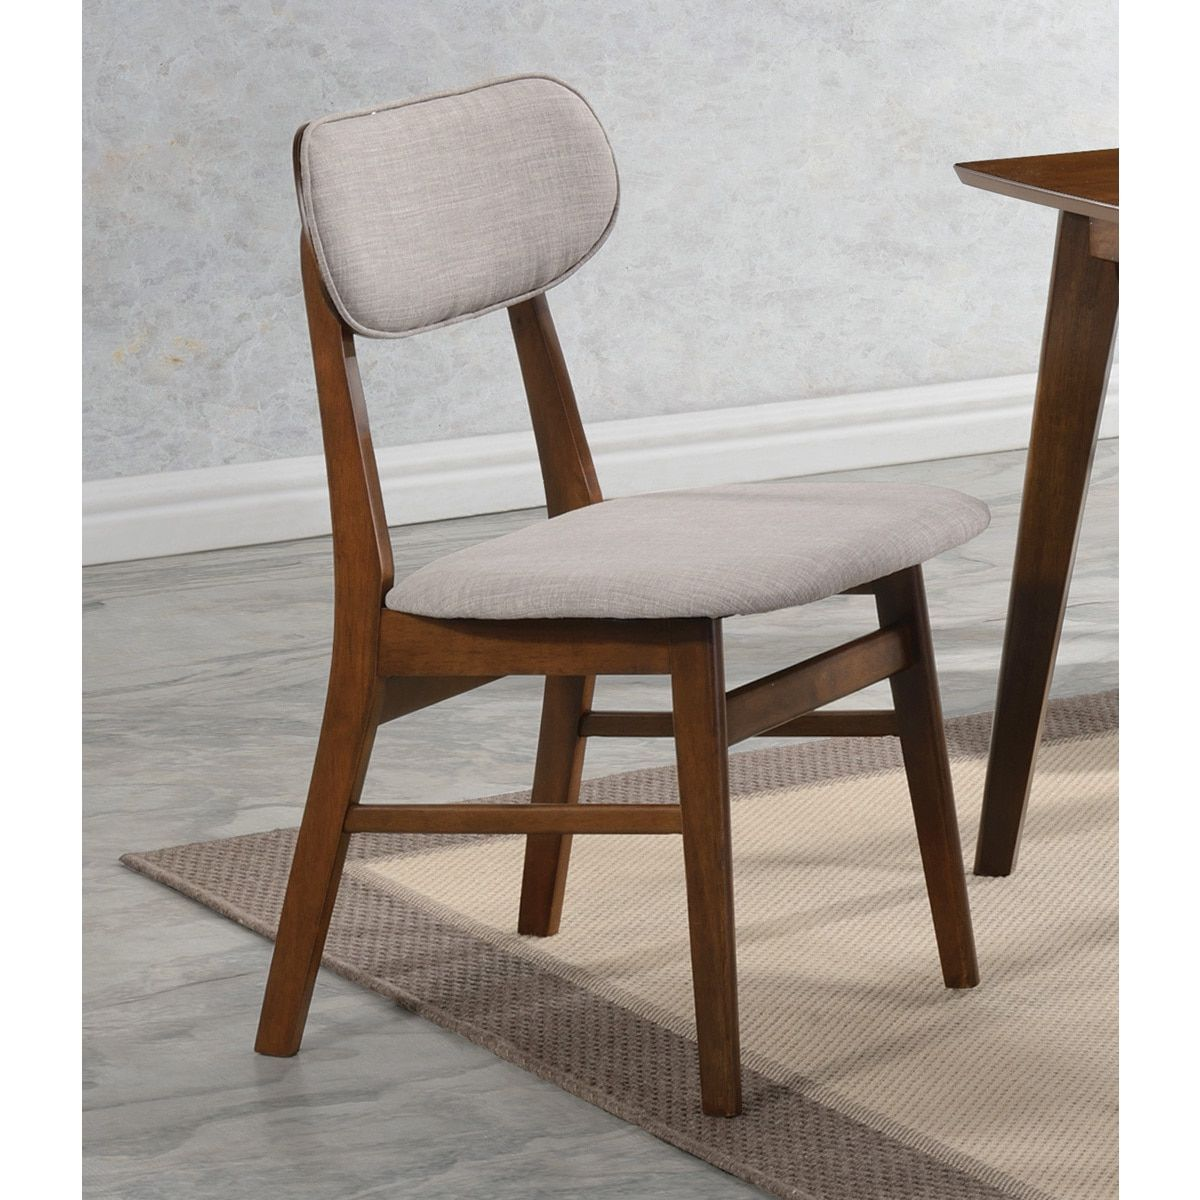 Coaster chestnut finish wood upholstered dining chair products